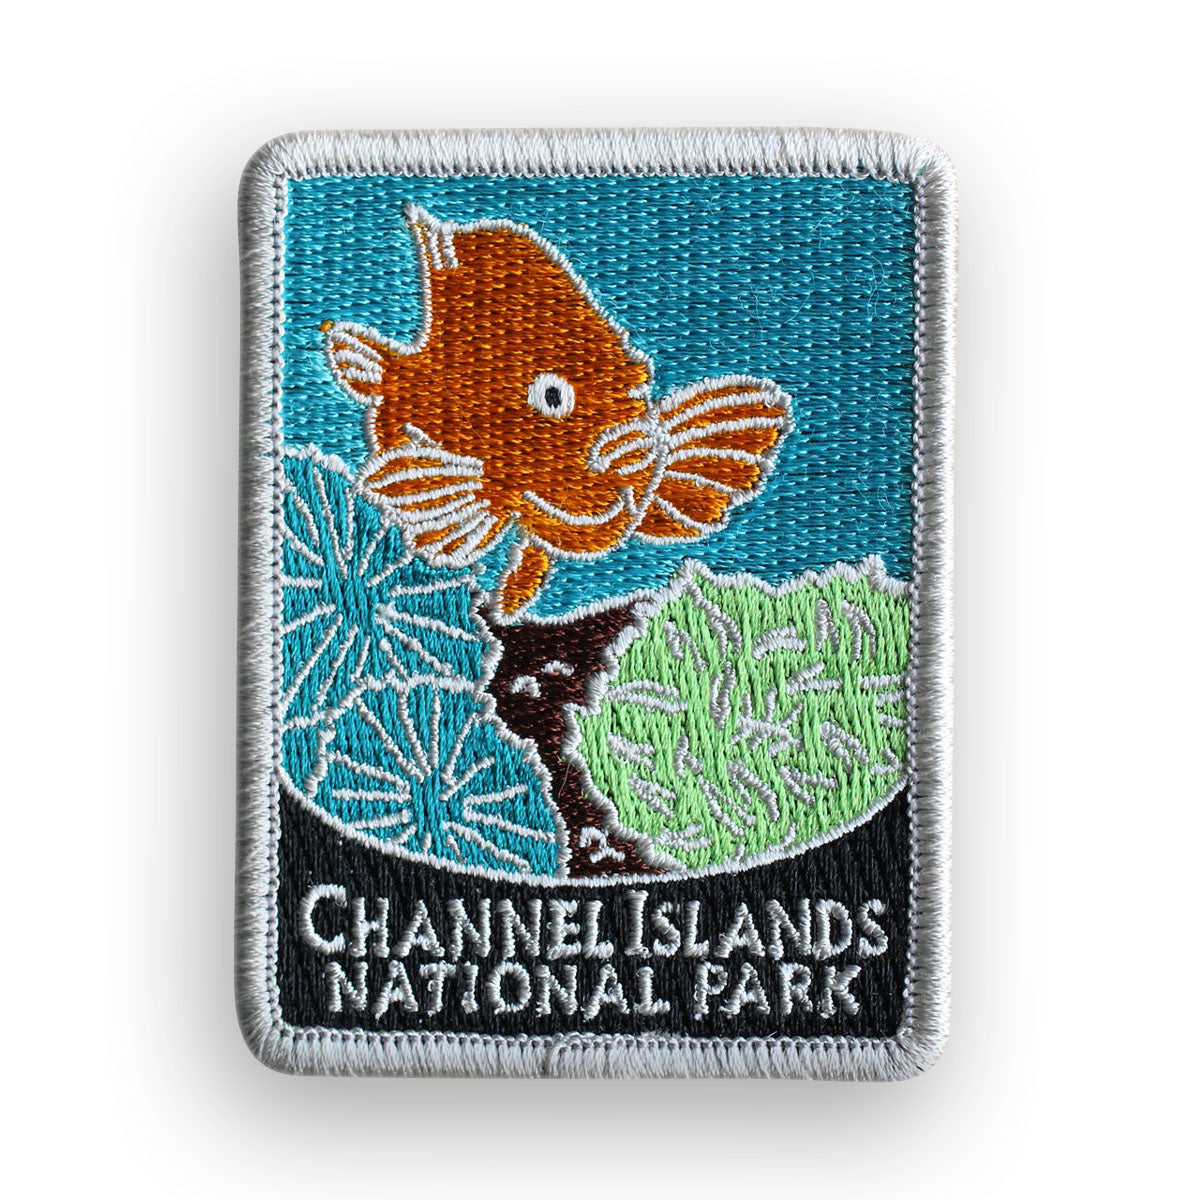 Channel Islands National Park Traveler Patch